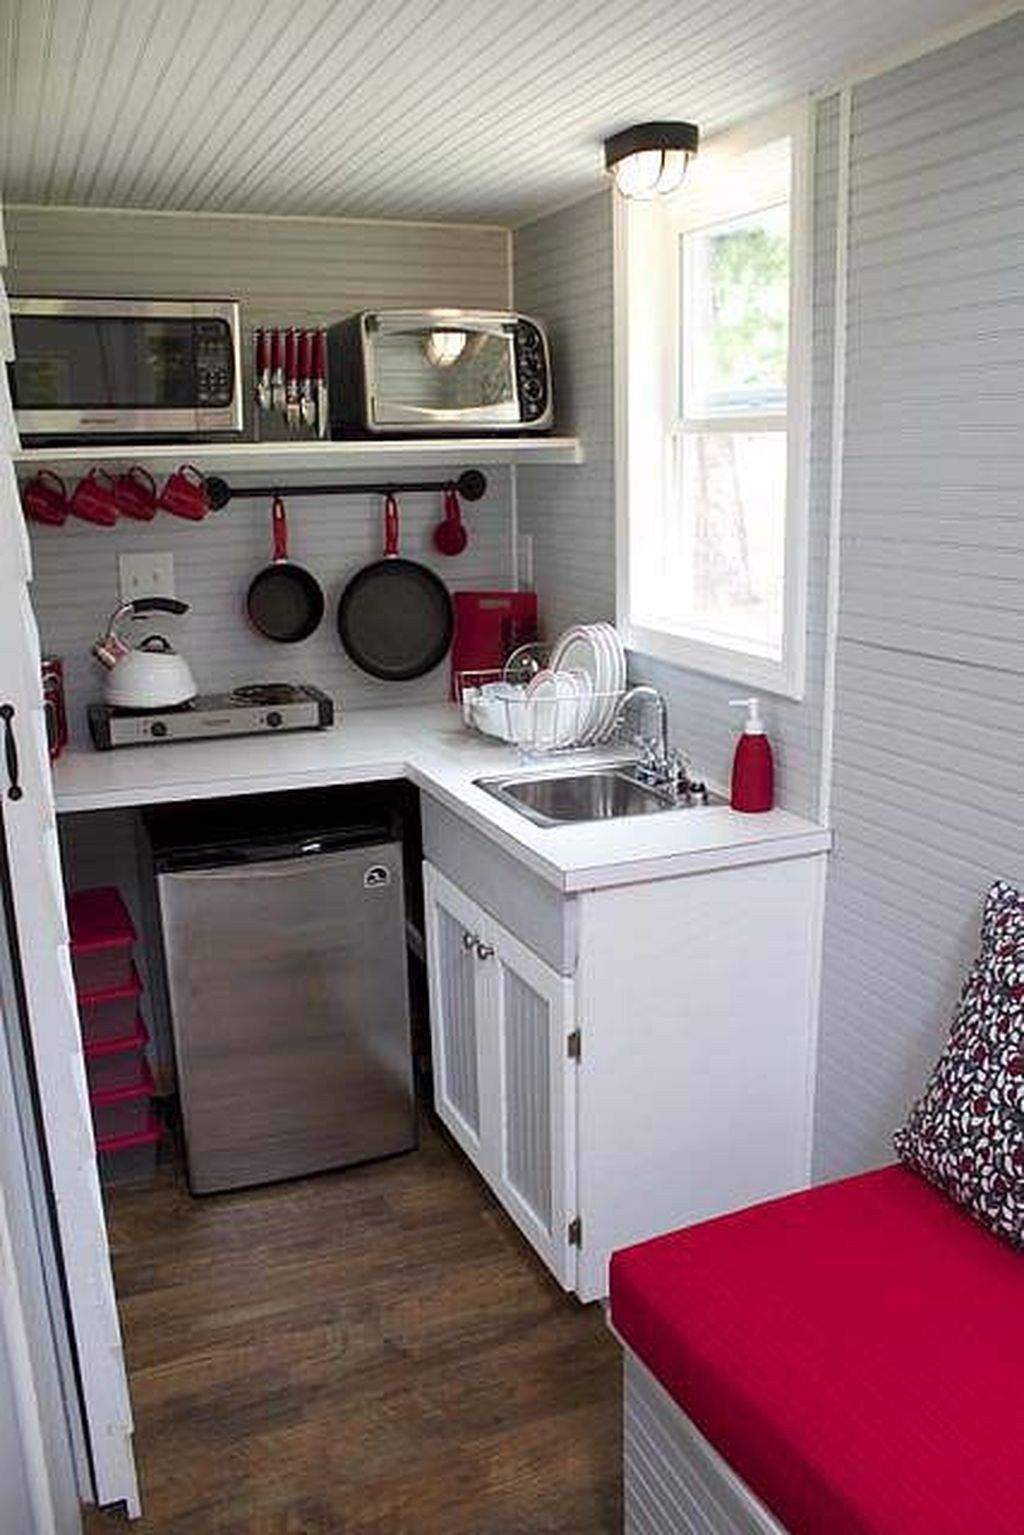 20+ Gorgoeus Tiny House Small Kitchen Ideas